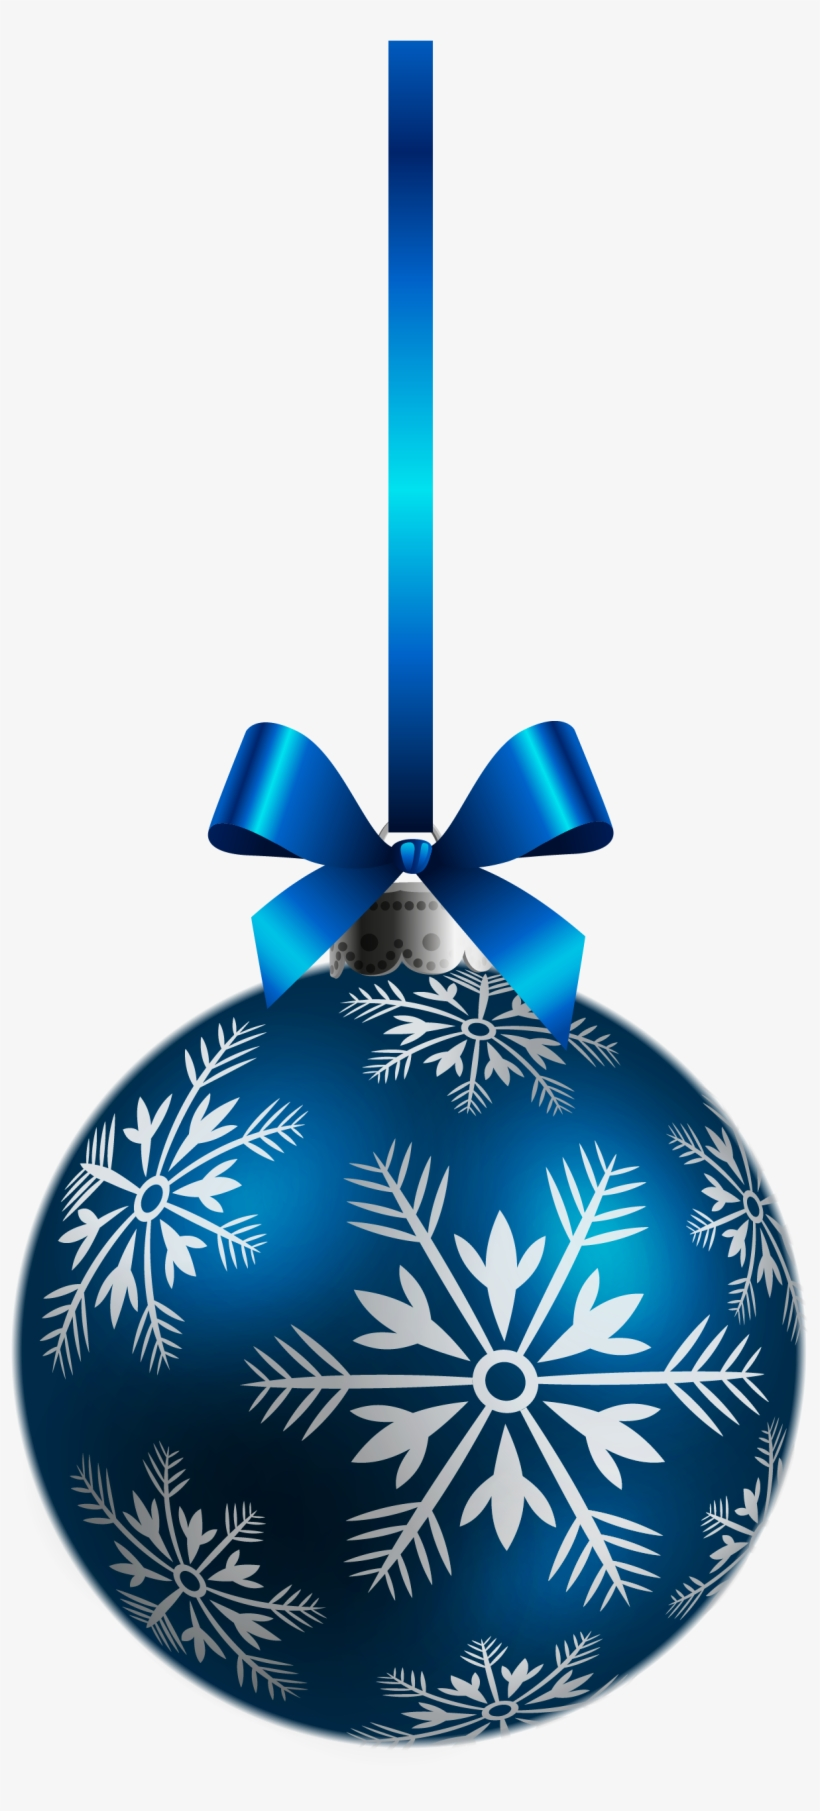 Large Transparent Blue Christmas Ball Ornament Png - Christmas Pattern Design Sofa Pillow Case, transparent png #4873